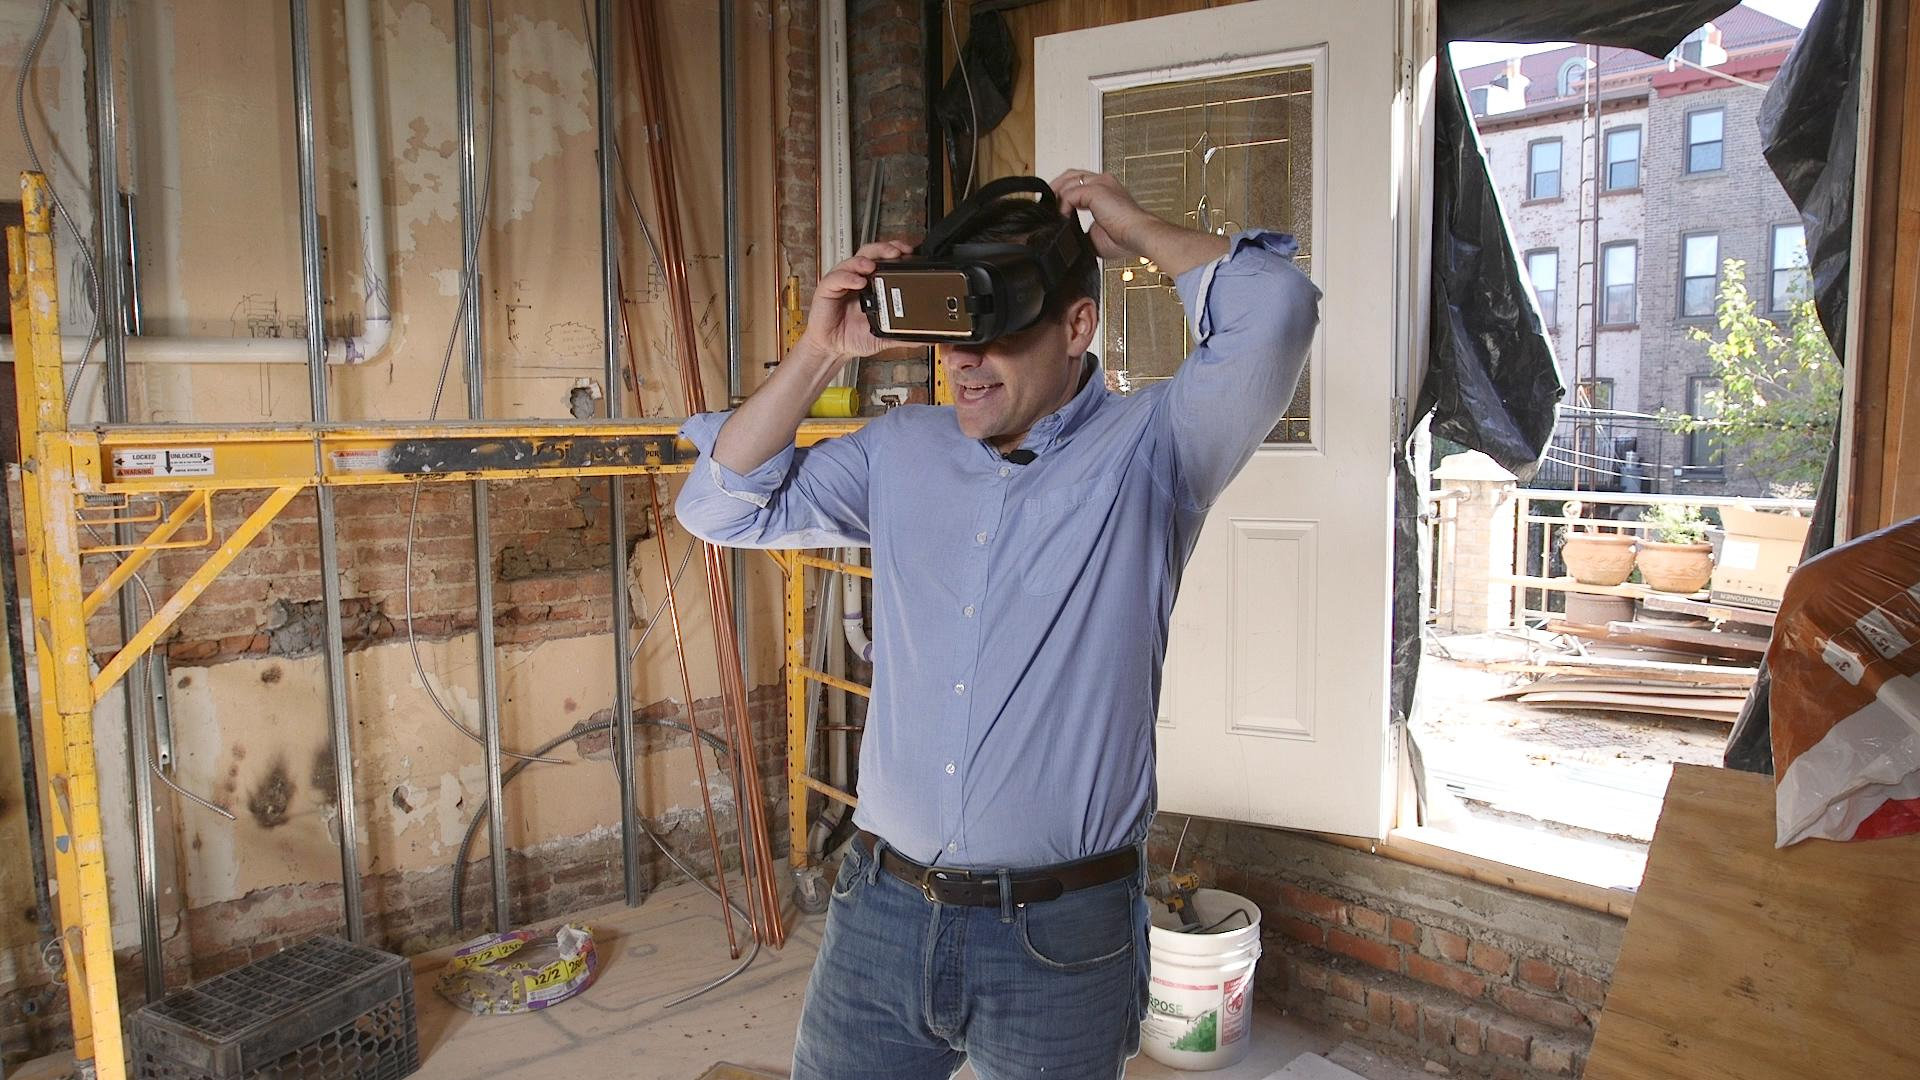 & Use Virtual Reality for a Home Renovation - Consumer Reports